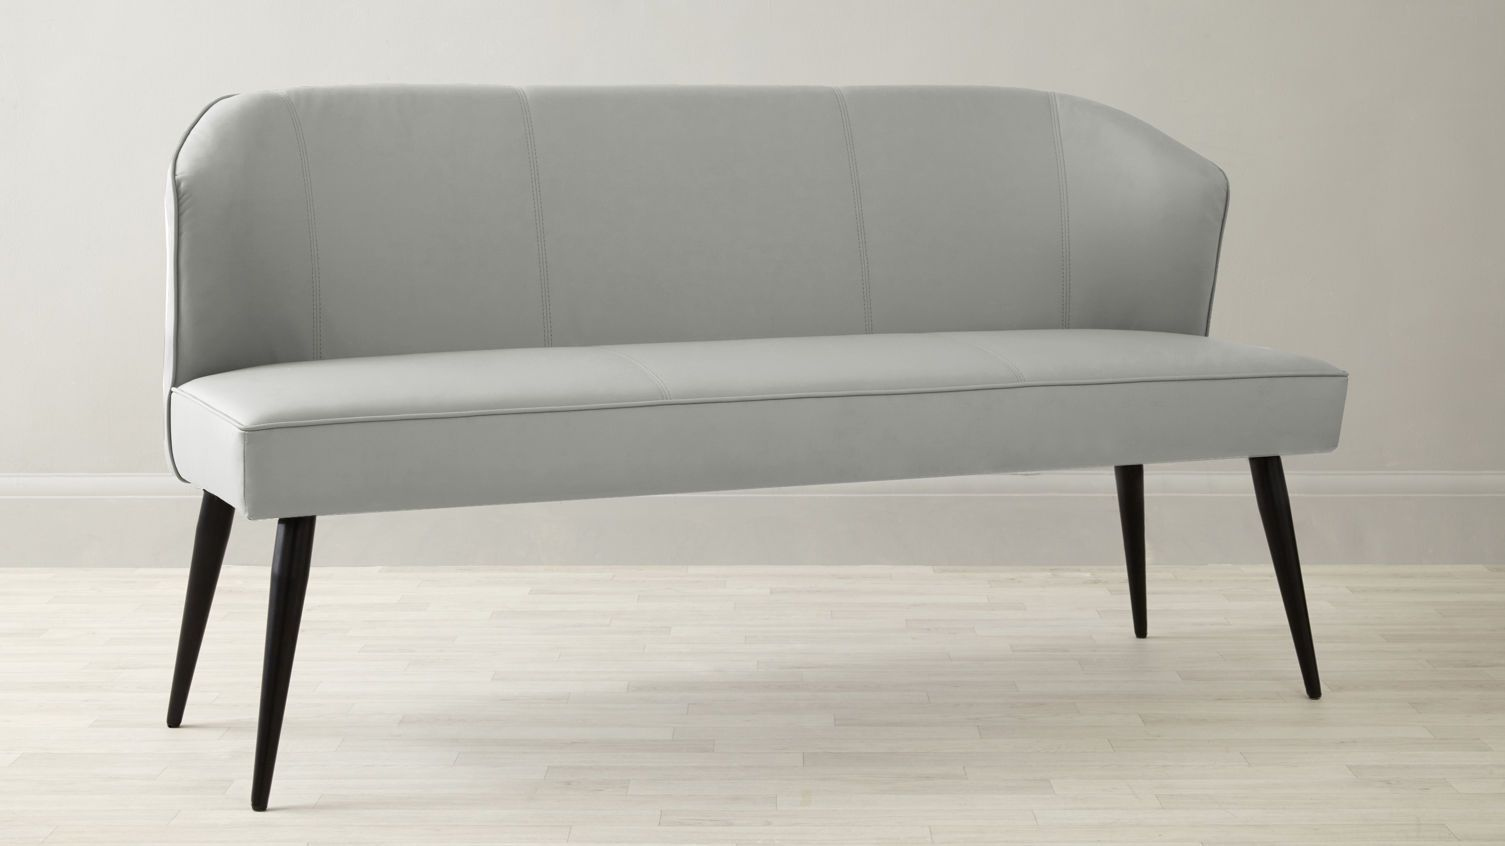 3 Seater Dining Bench With Backrest | Modern Dining Furniture